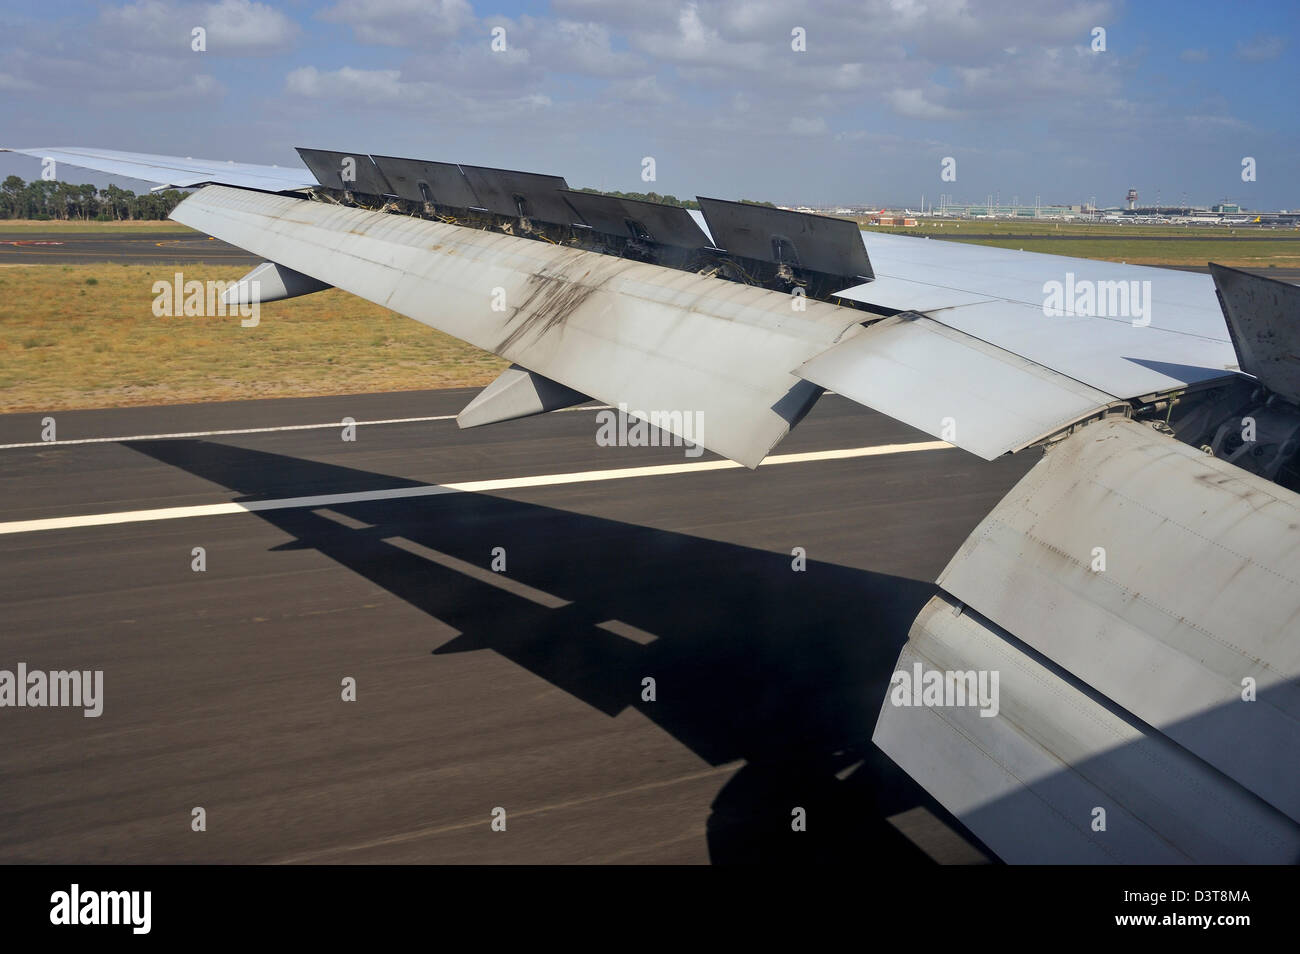 Wing of an aircraft landing on an airport runway - Stock Image